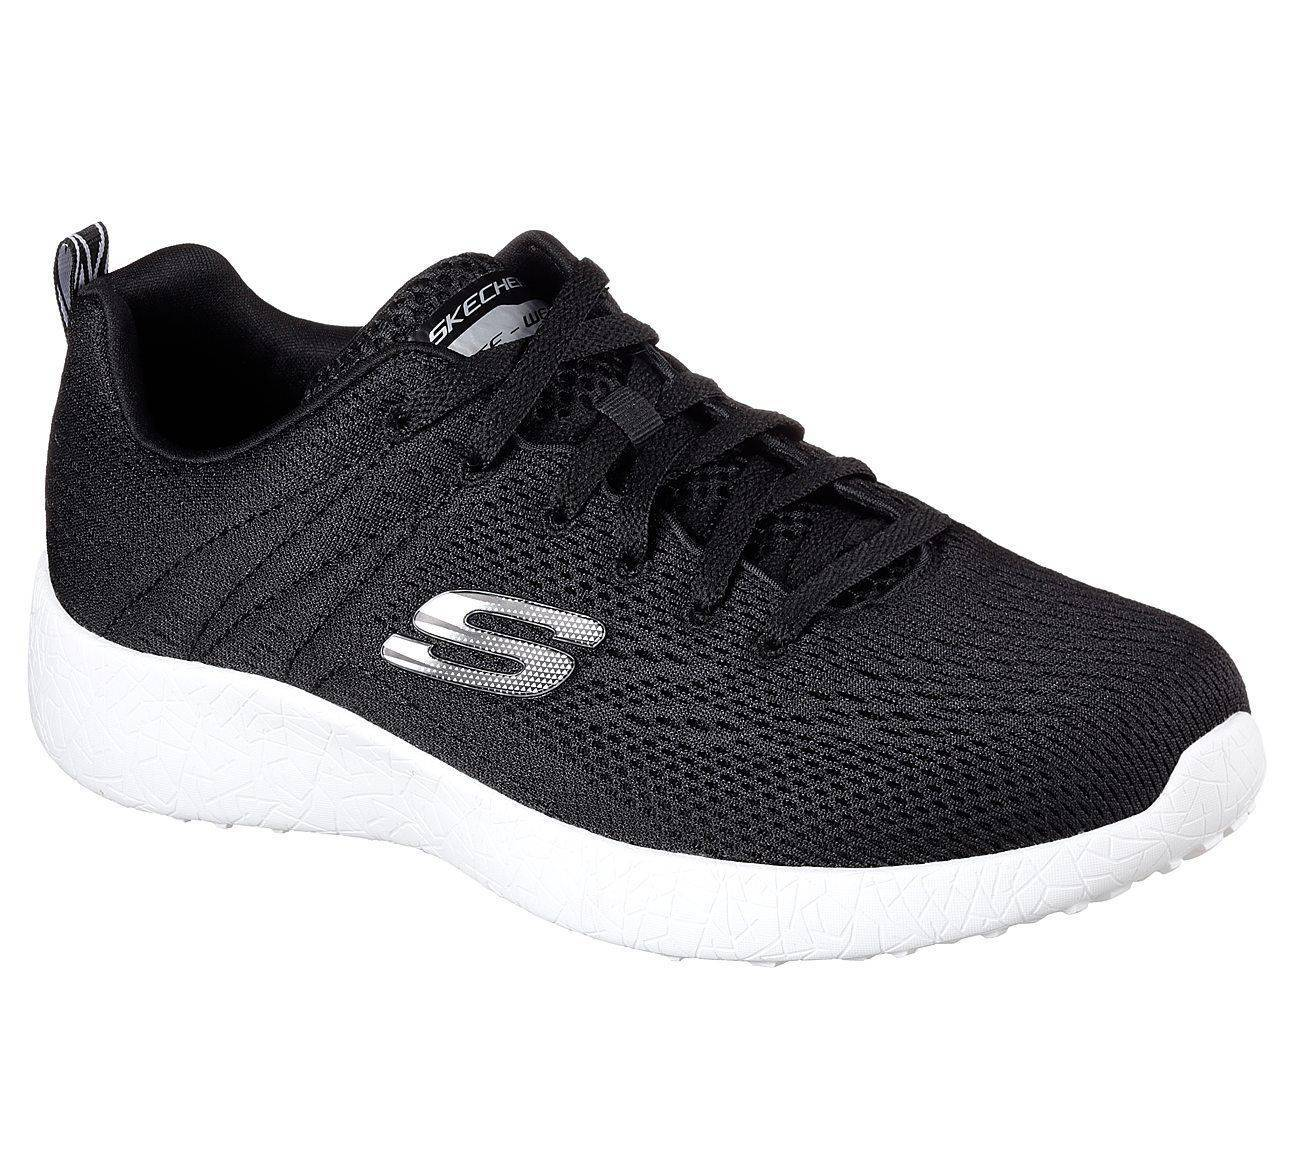 Skechers Mens Black and White Energy Burst Training Shoes -9.5